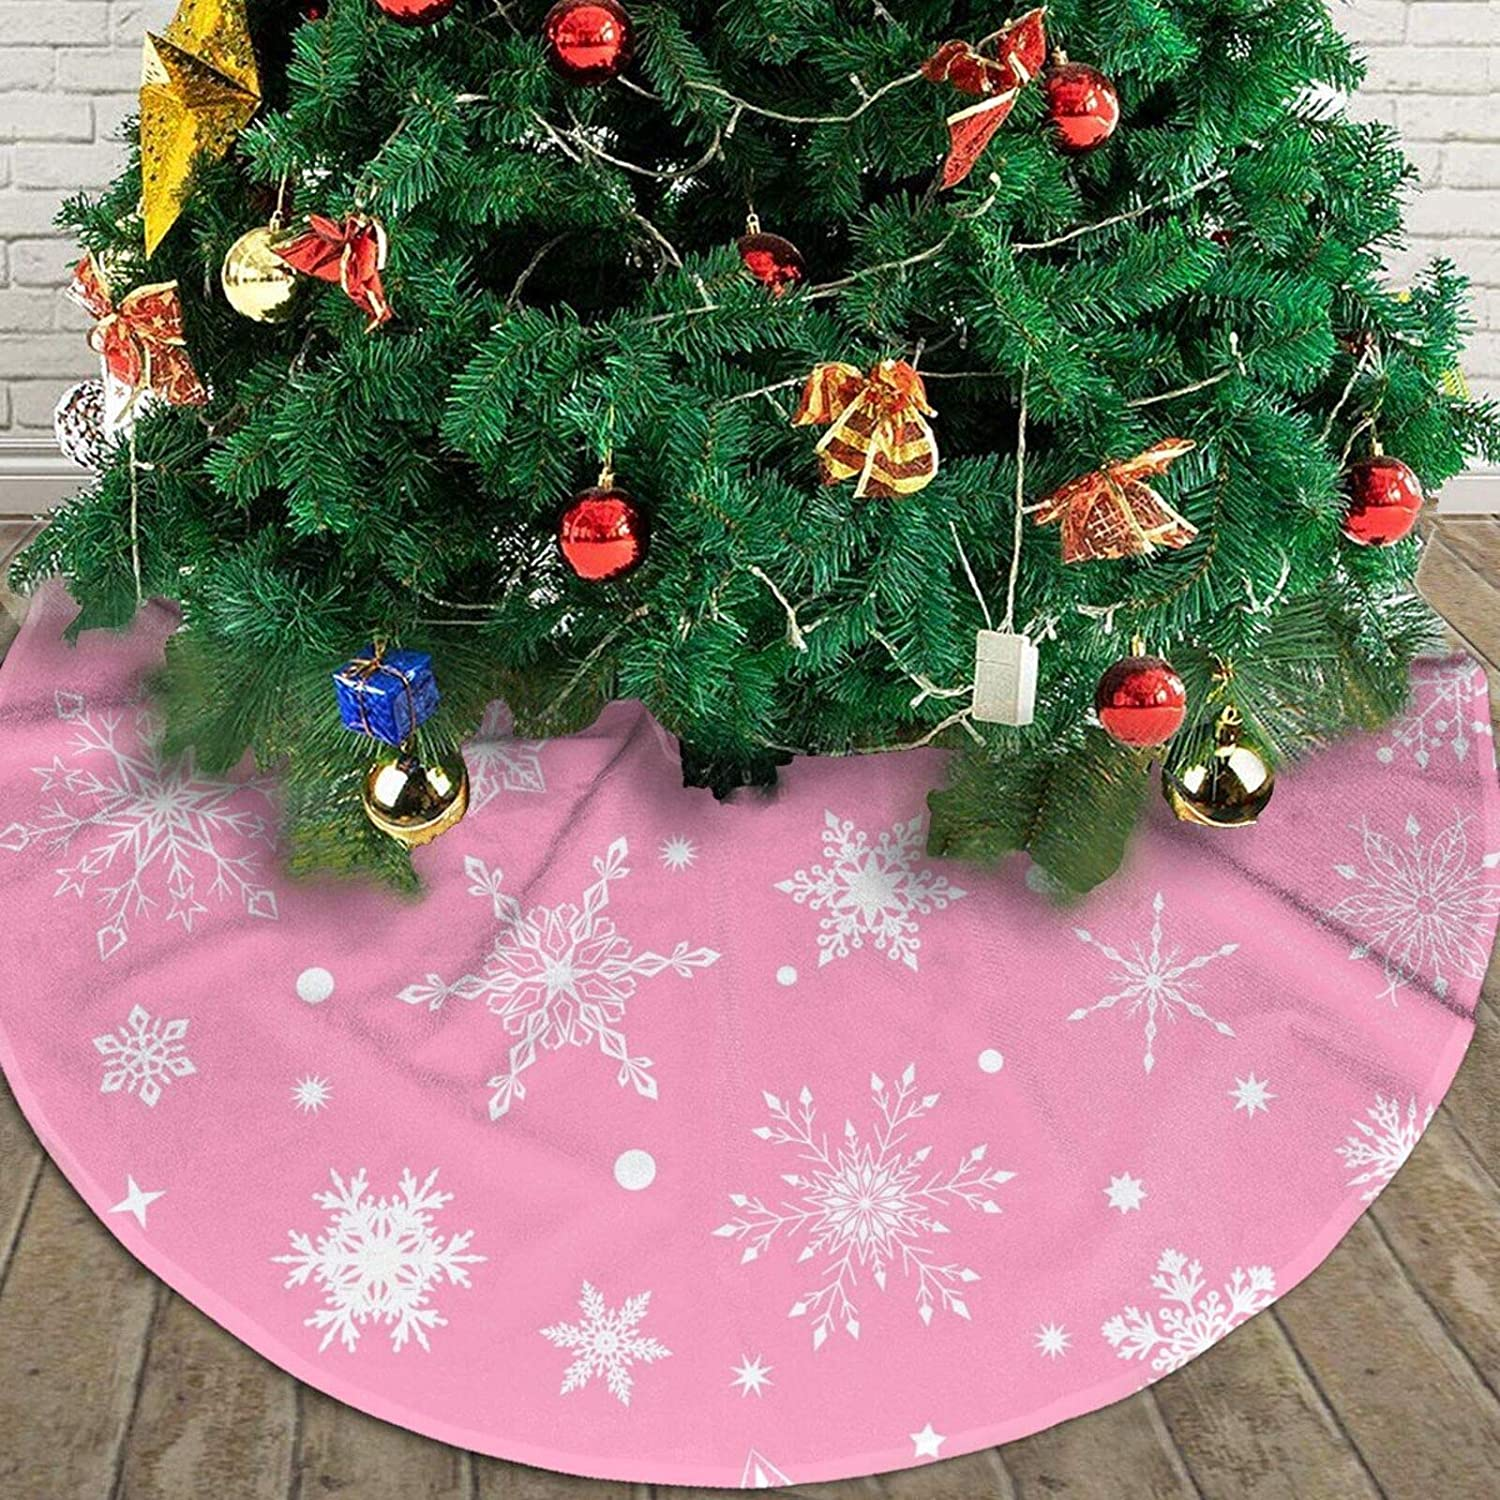 MINIOZE Patriotic Bald Eagle American Flag July 4th Themed 30 36 48 Inch Big Christmas Plush Tree Skirt Carpet Mat Rugs Cover Large Round Pad Classic Xmas Party Favors Ornament Decoration